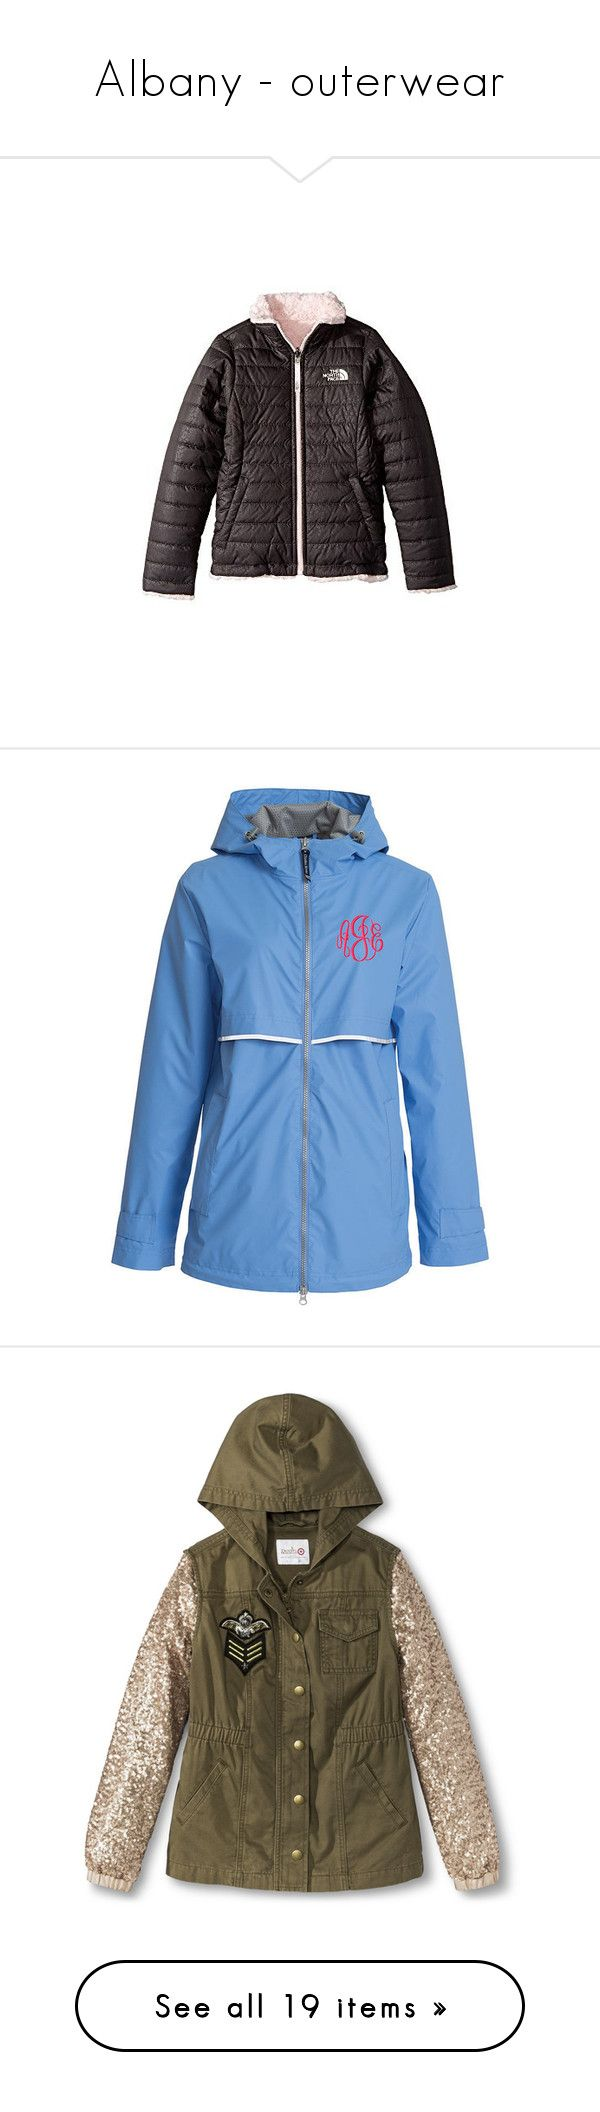 """Albany - outerwear"" by those-families ❤ liked on Polyvore featuring AlbanyAkira, outerwear, coats, black, women's clothing, stripe coat, hooded rain jacket, waterproof rain jacket, waterproof raincoat and monogrammed rain jacket"